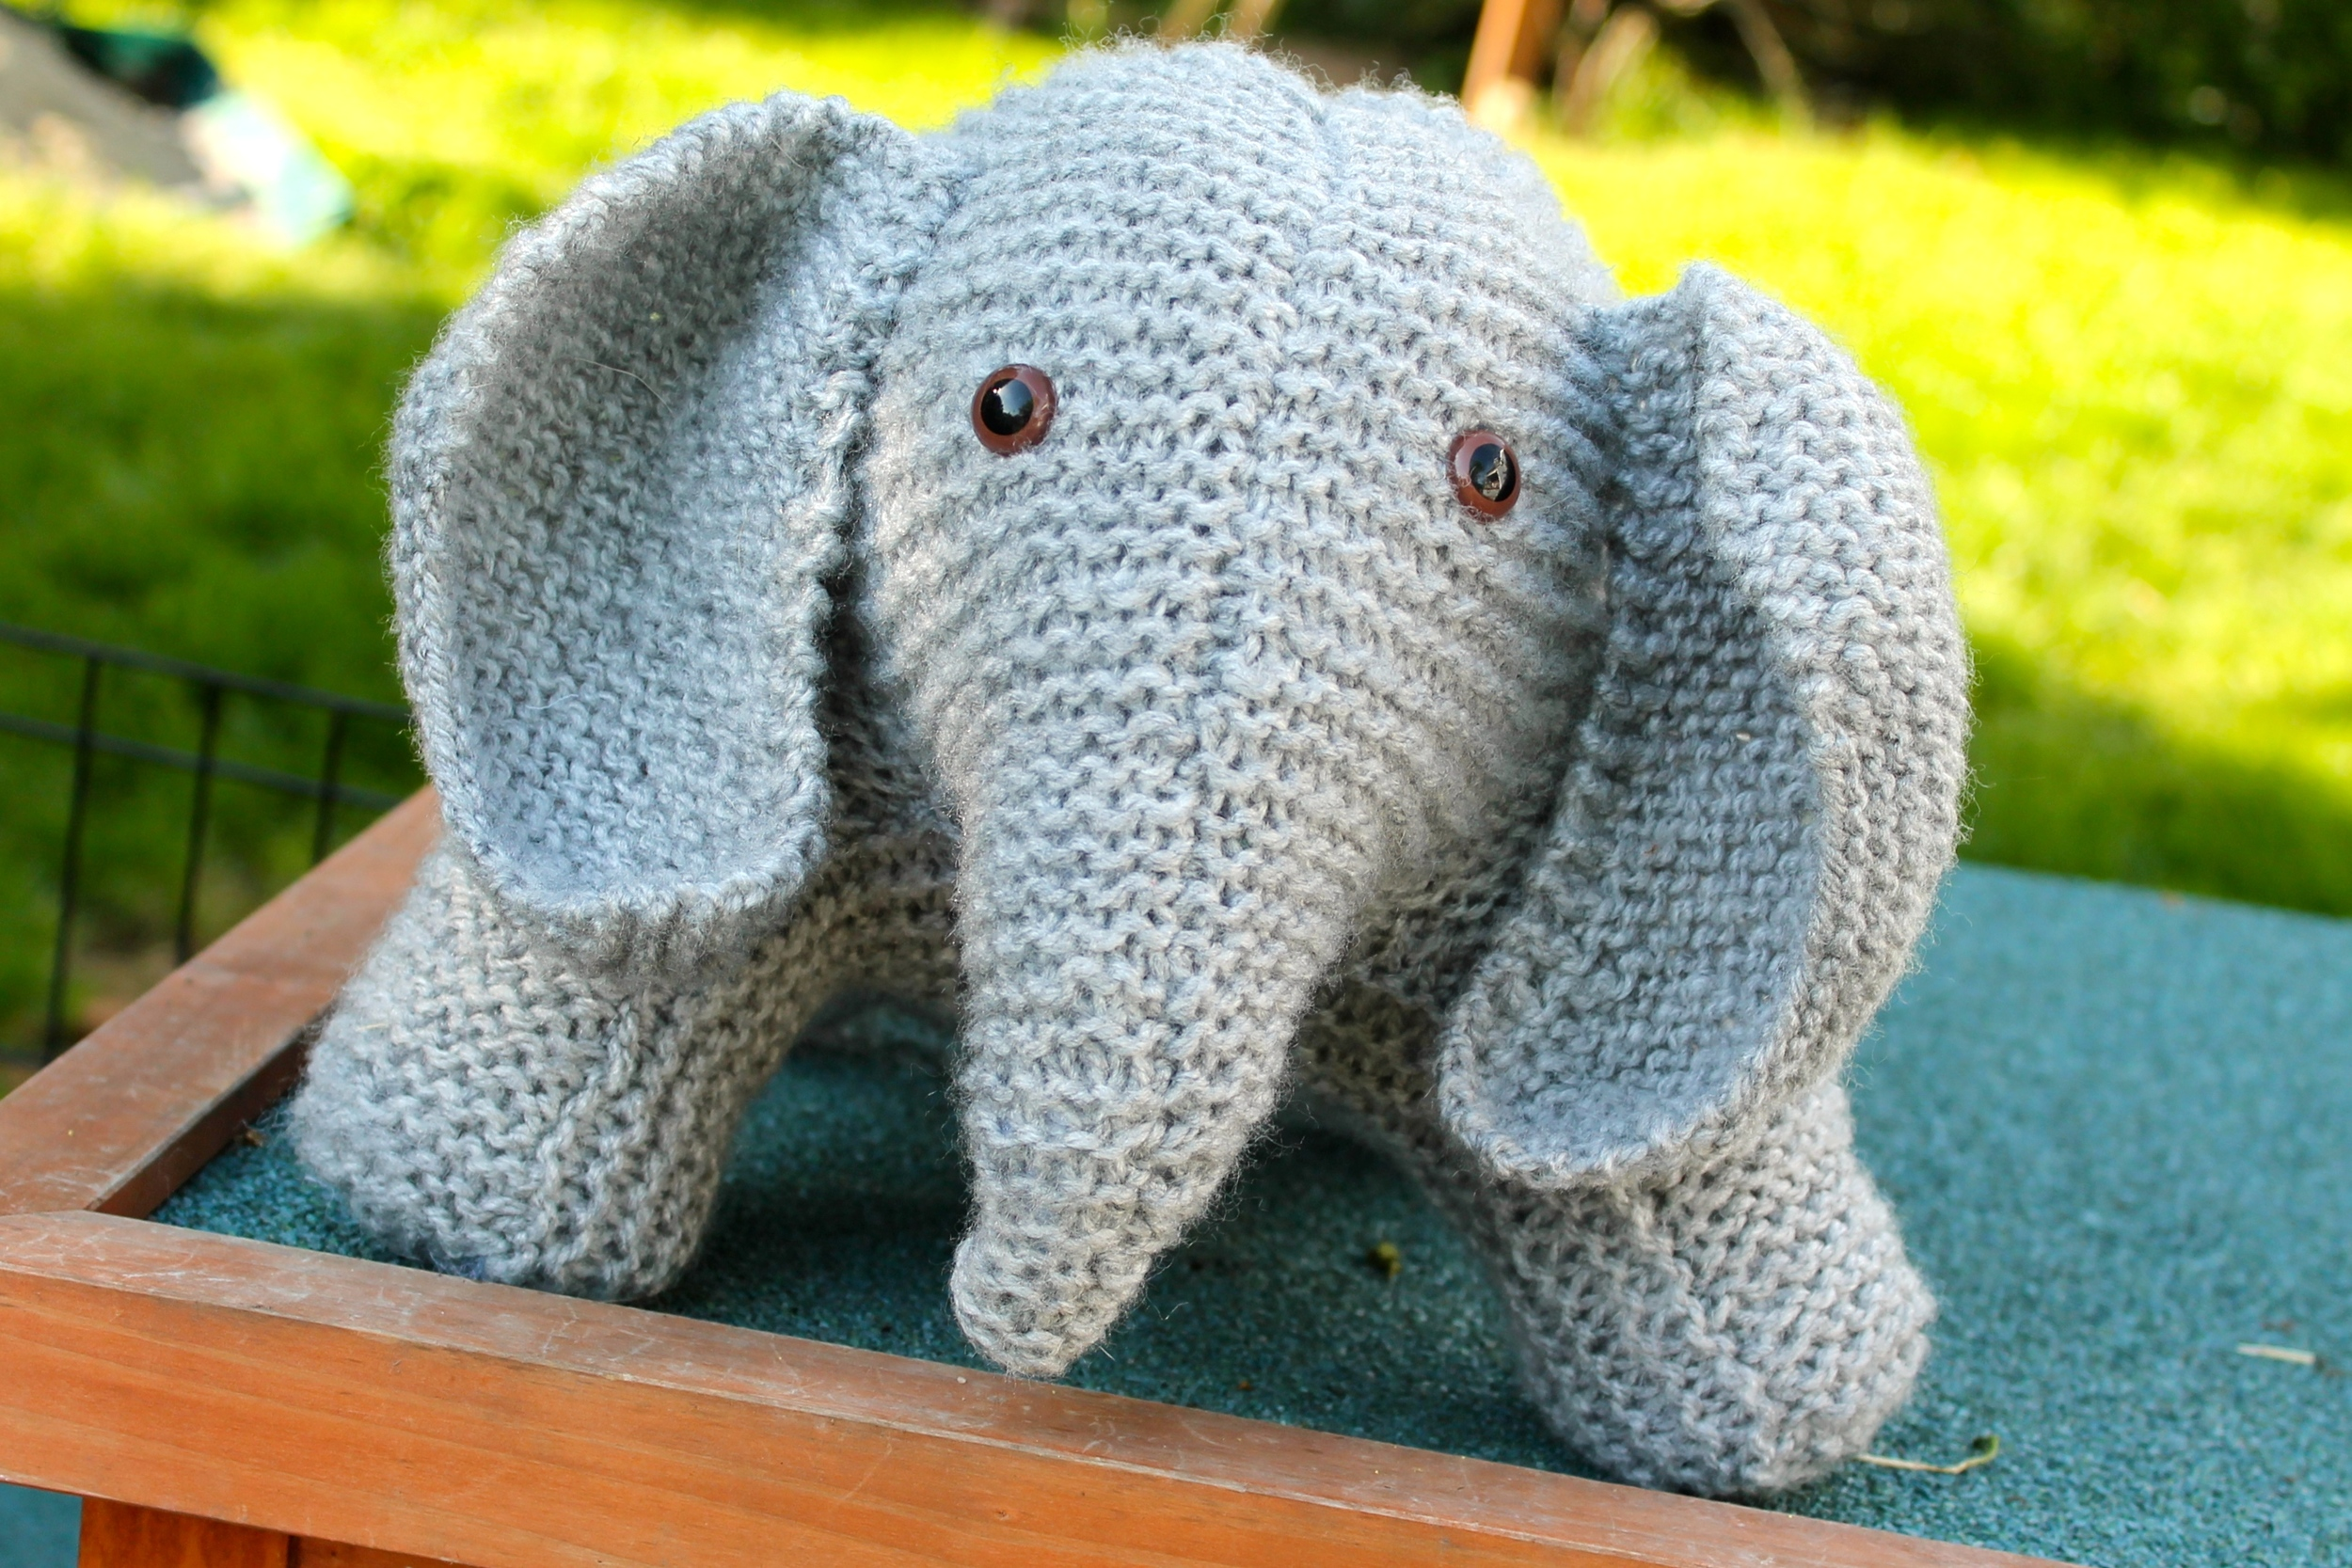 Gray knit stuffed elephant with brown glass eyes